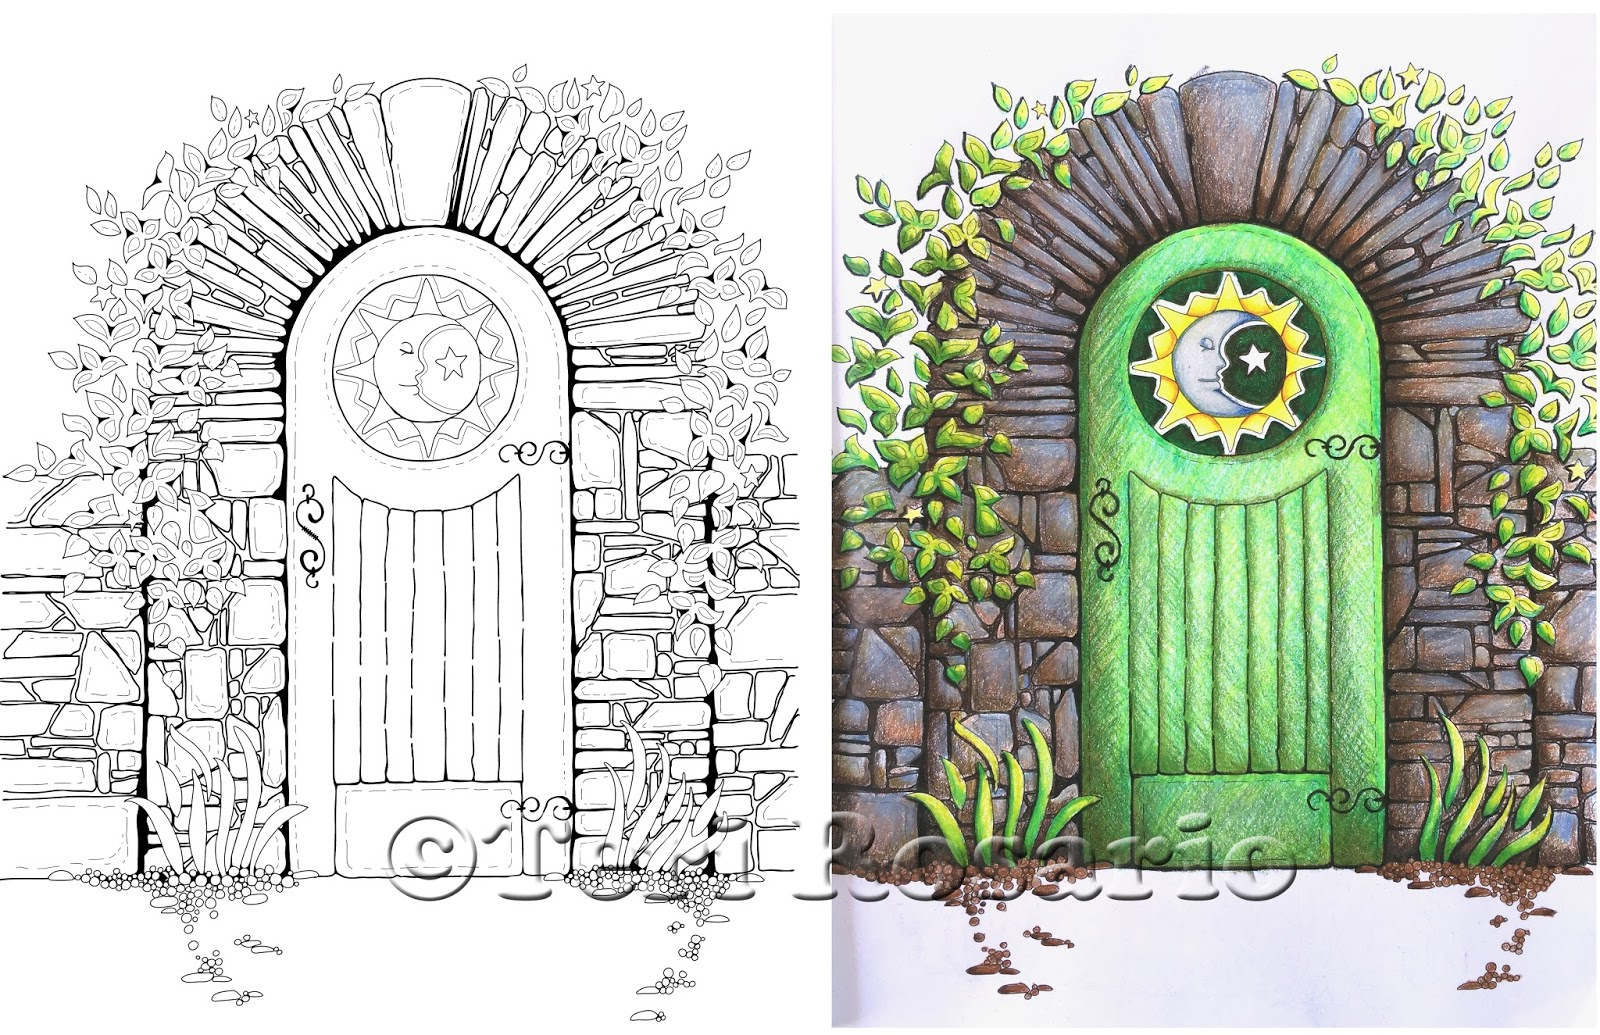 What You See Here Is The Coloring Page Thats On Right And Description Left Which Facing In Book